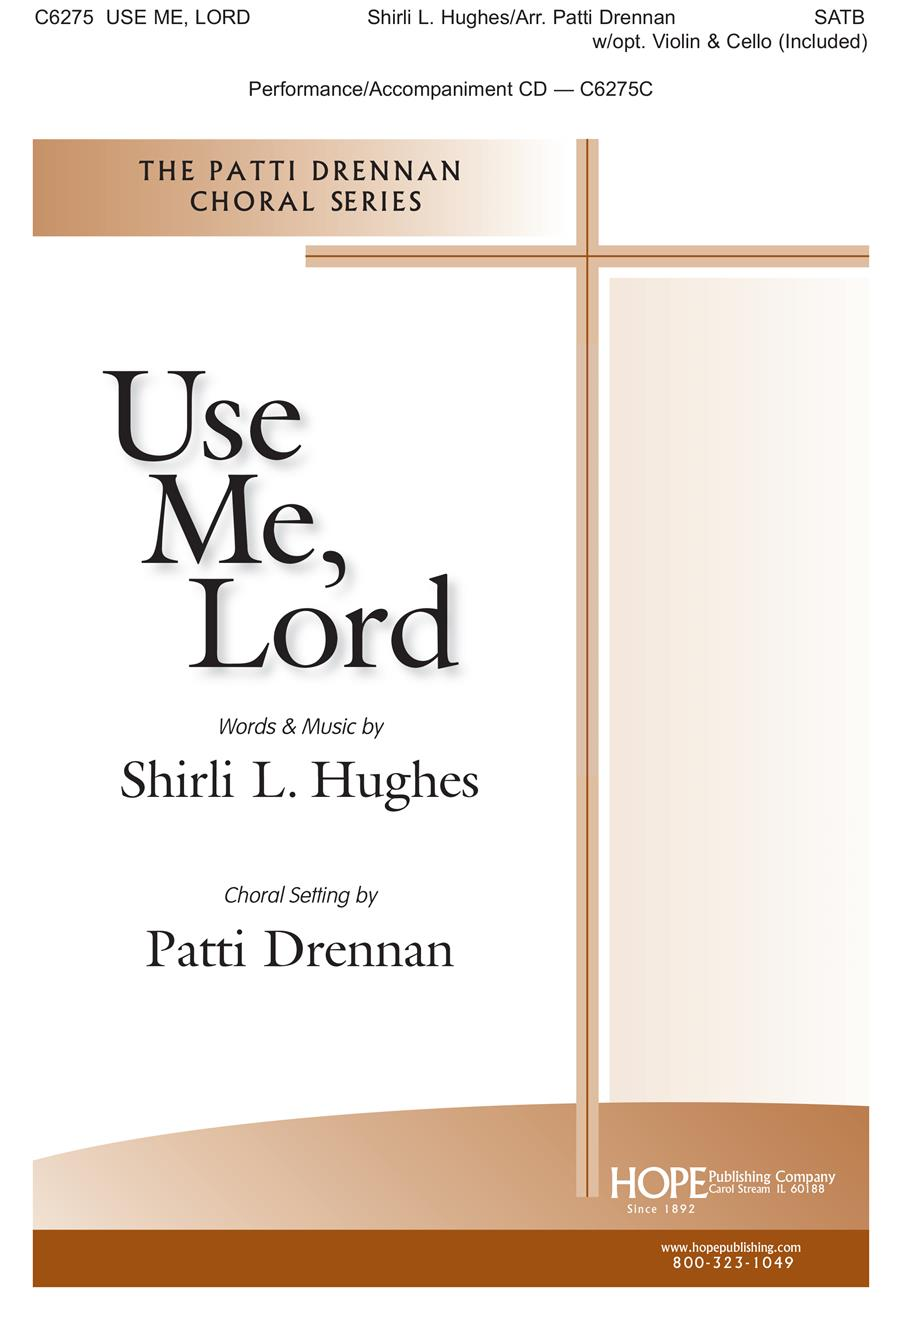 Use Me Lord - SATB w- violin and cello Cover Image